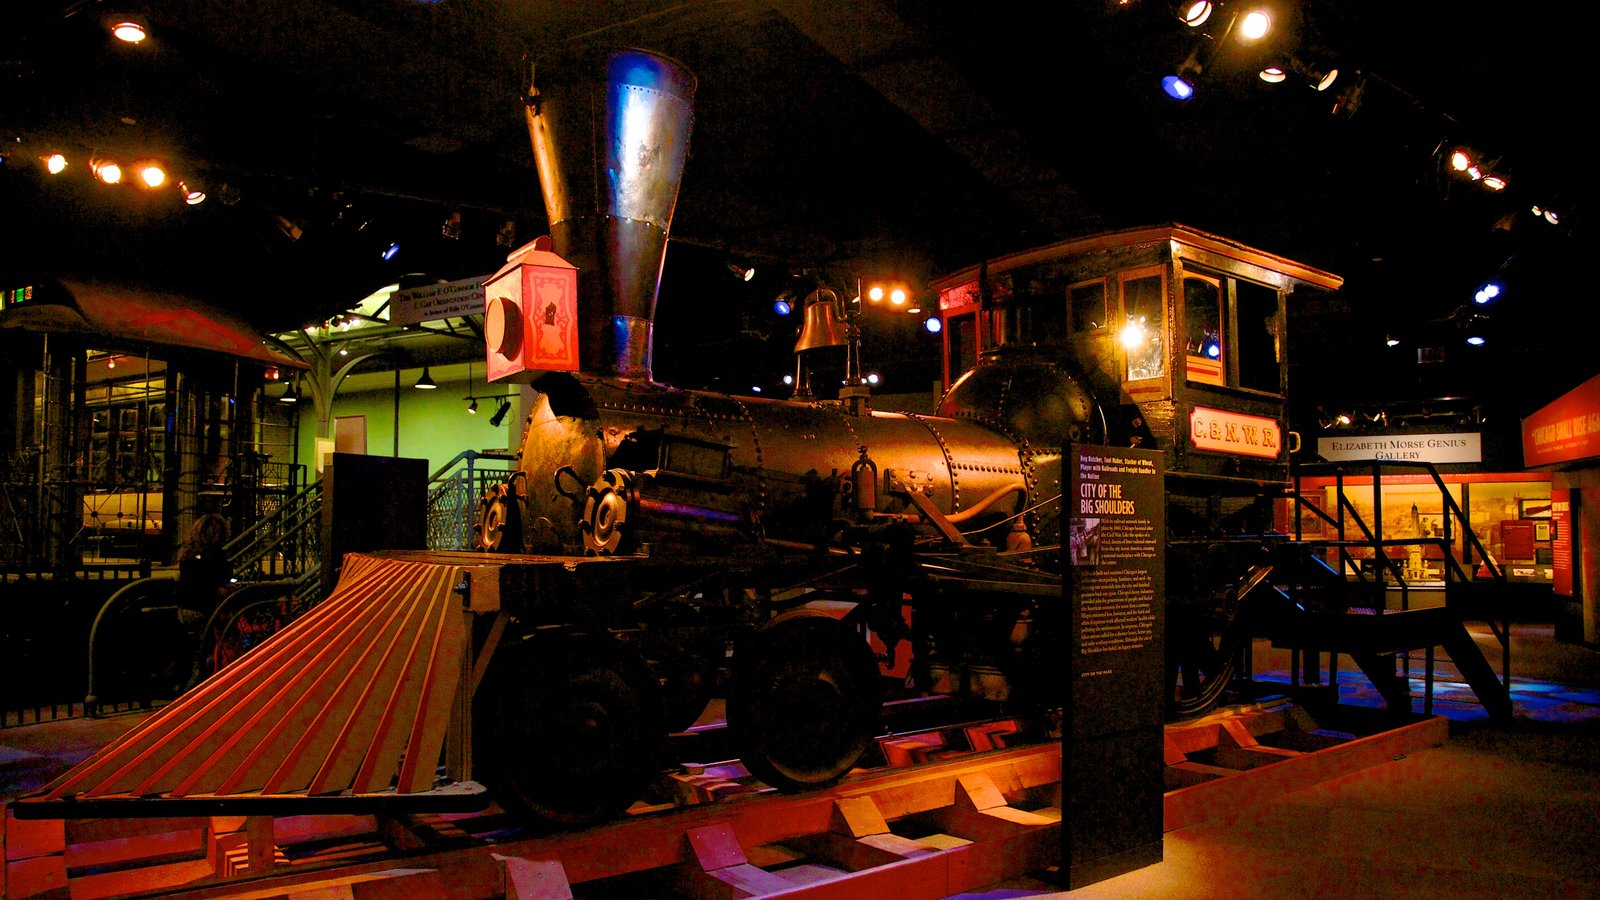 Chicago History Museum featuring railway items, interior views and night scenes